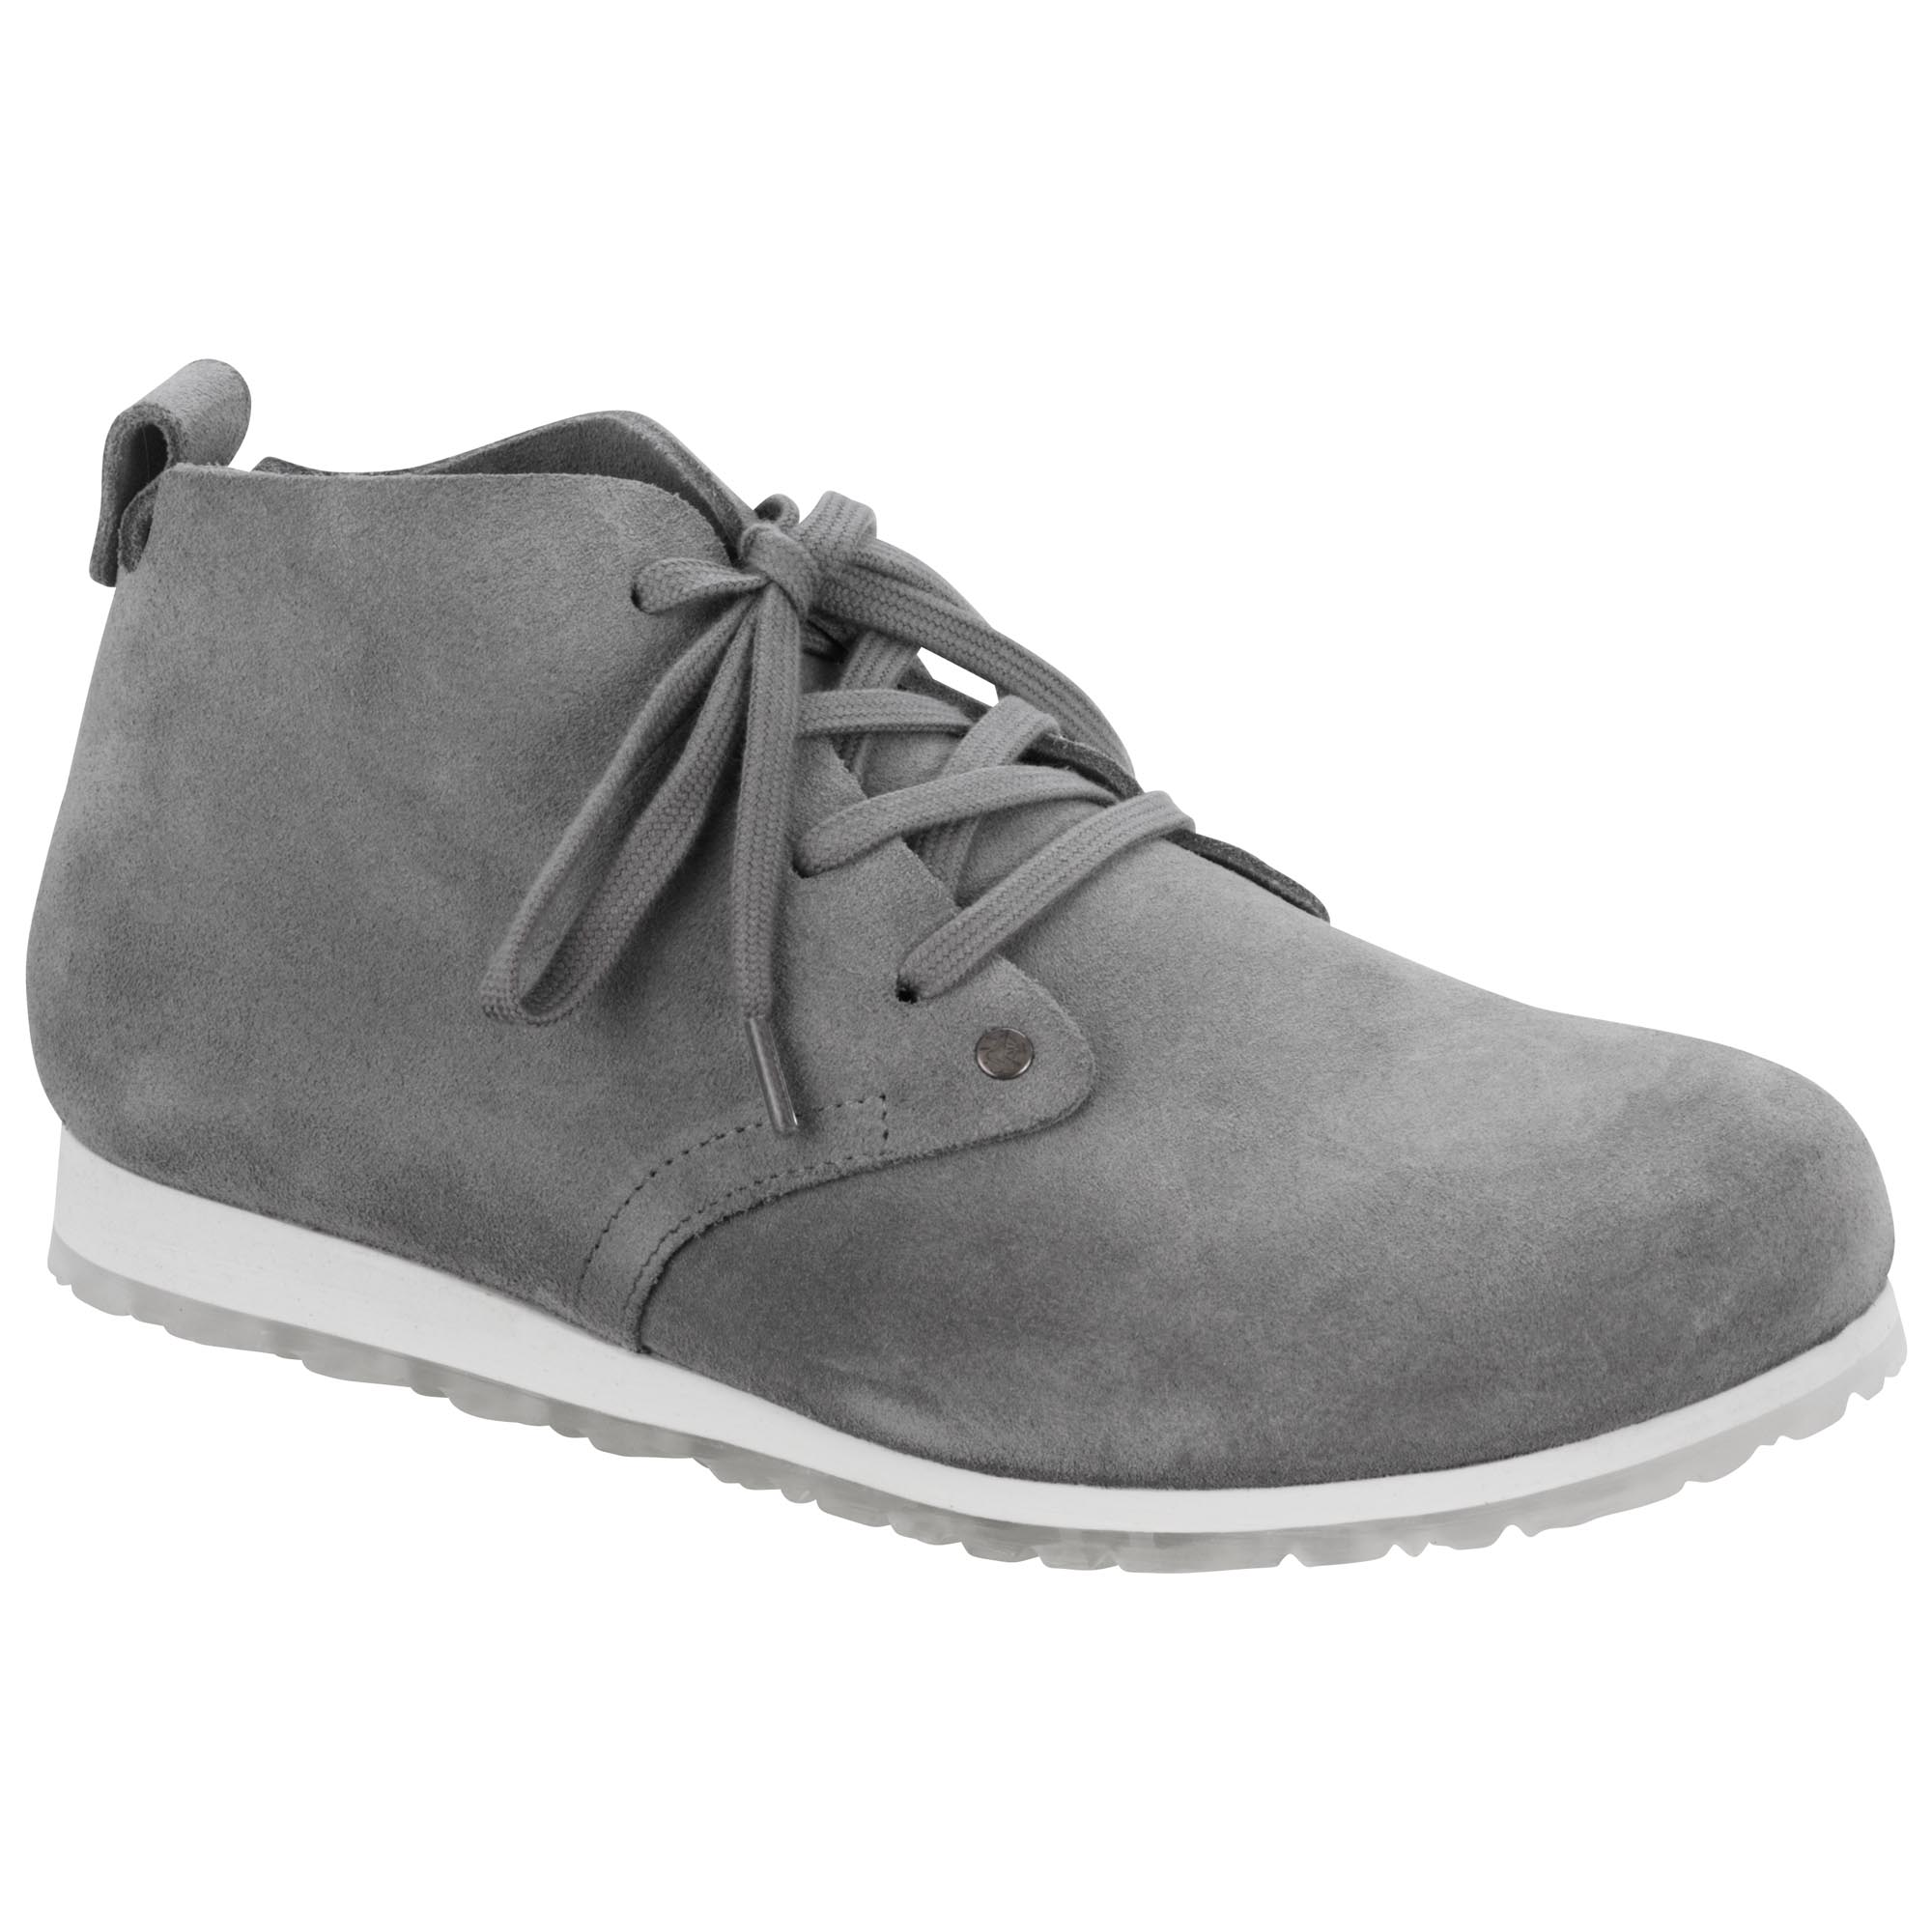 eefbce47d287 Dundee Plus Suede Leather Gray ...